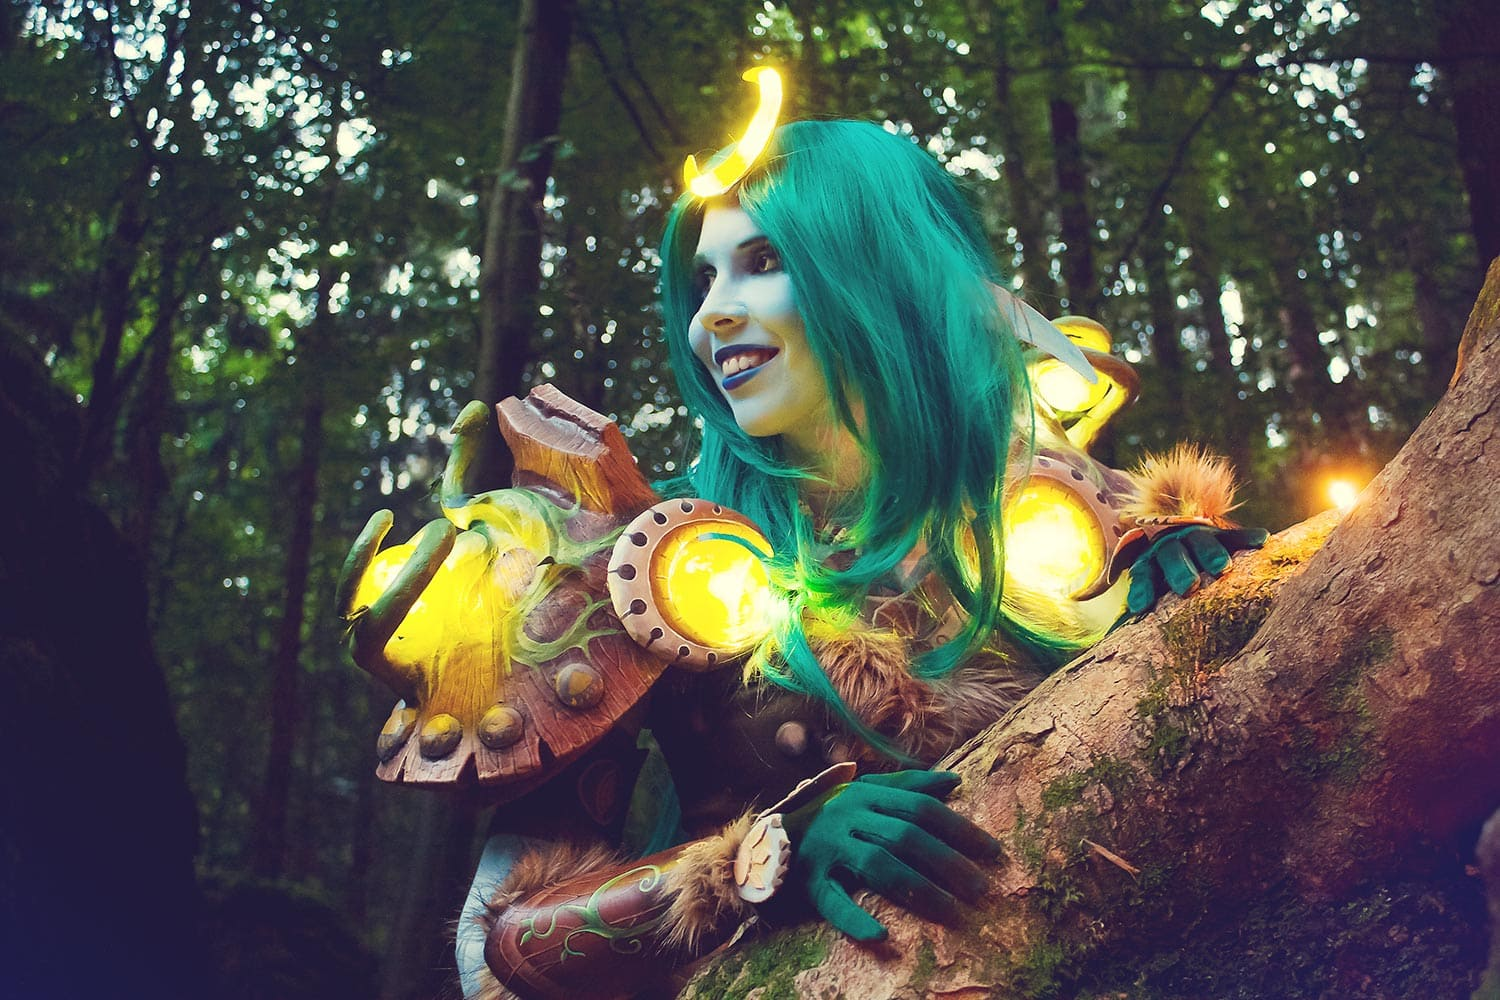 Kamui-Cosplay-Druid-Tier8-Costume-World-of-Warcraft